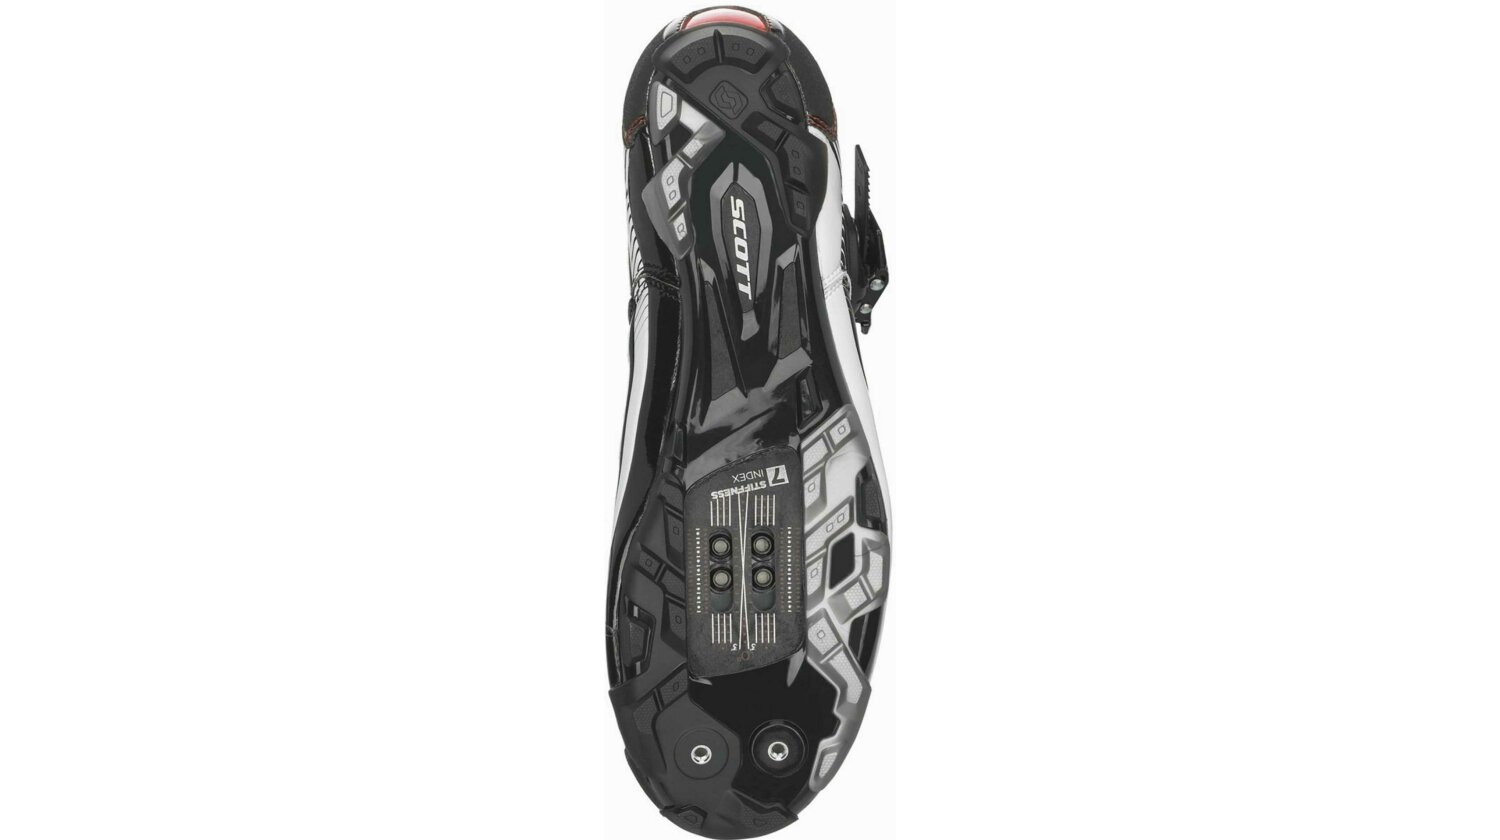 Scott MTB Pro Schuh white/black gloss 40